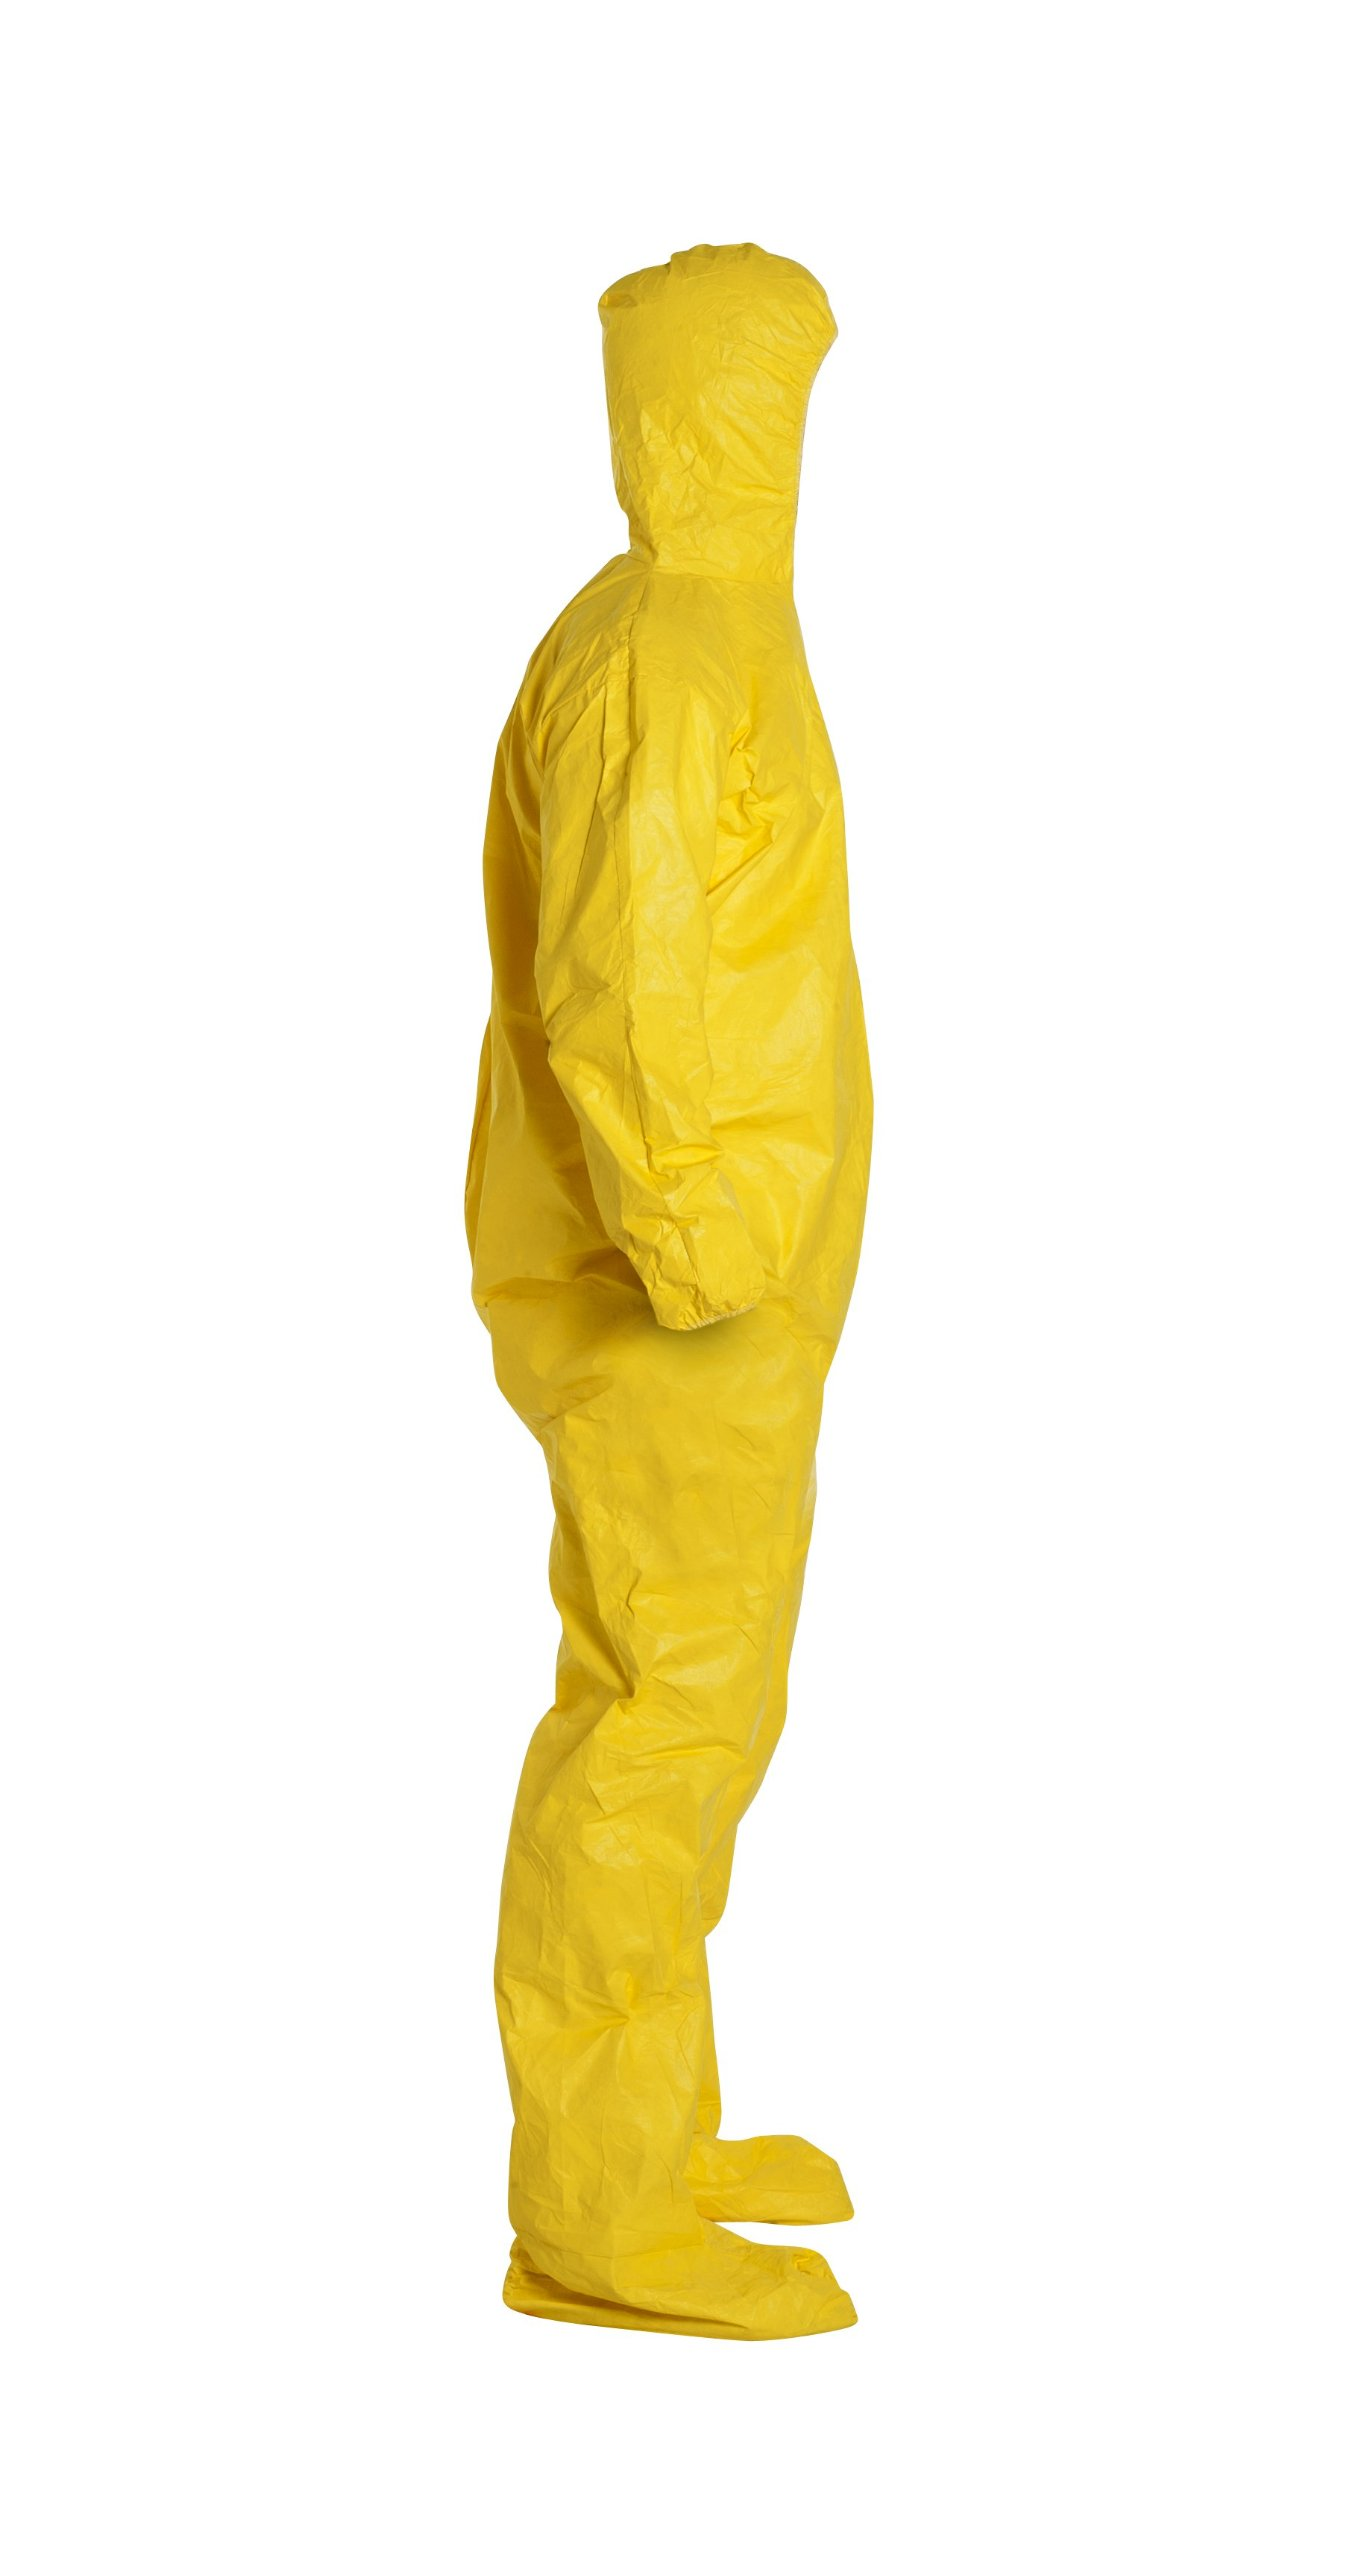 DuPont Tychem 2000 QC122S Chemical Resistant Coverall with Hood and Socks, Disposable, Elastic Cuff, Yellow, 2XL (Pack of 12) by DuPont (Image #3)